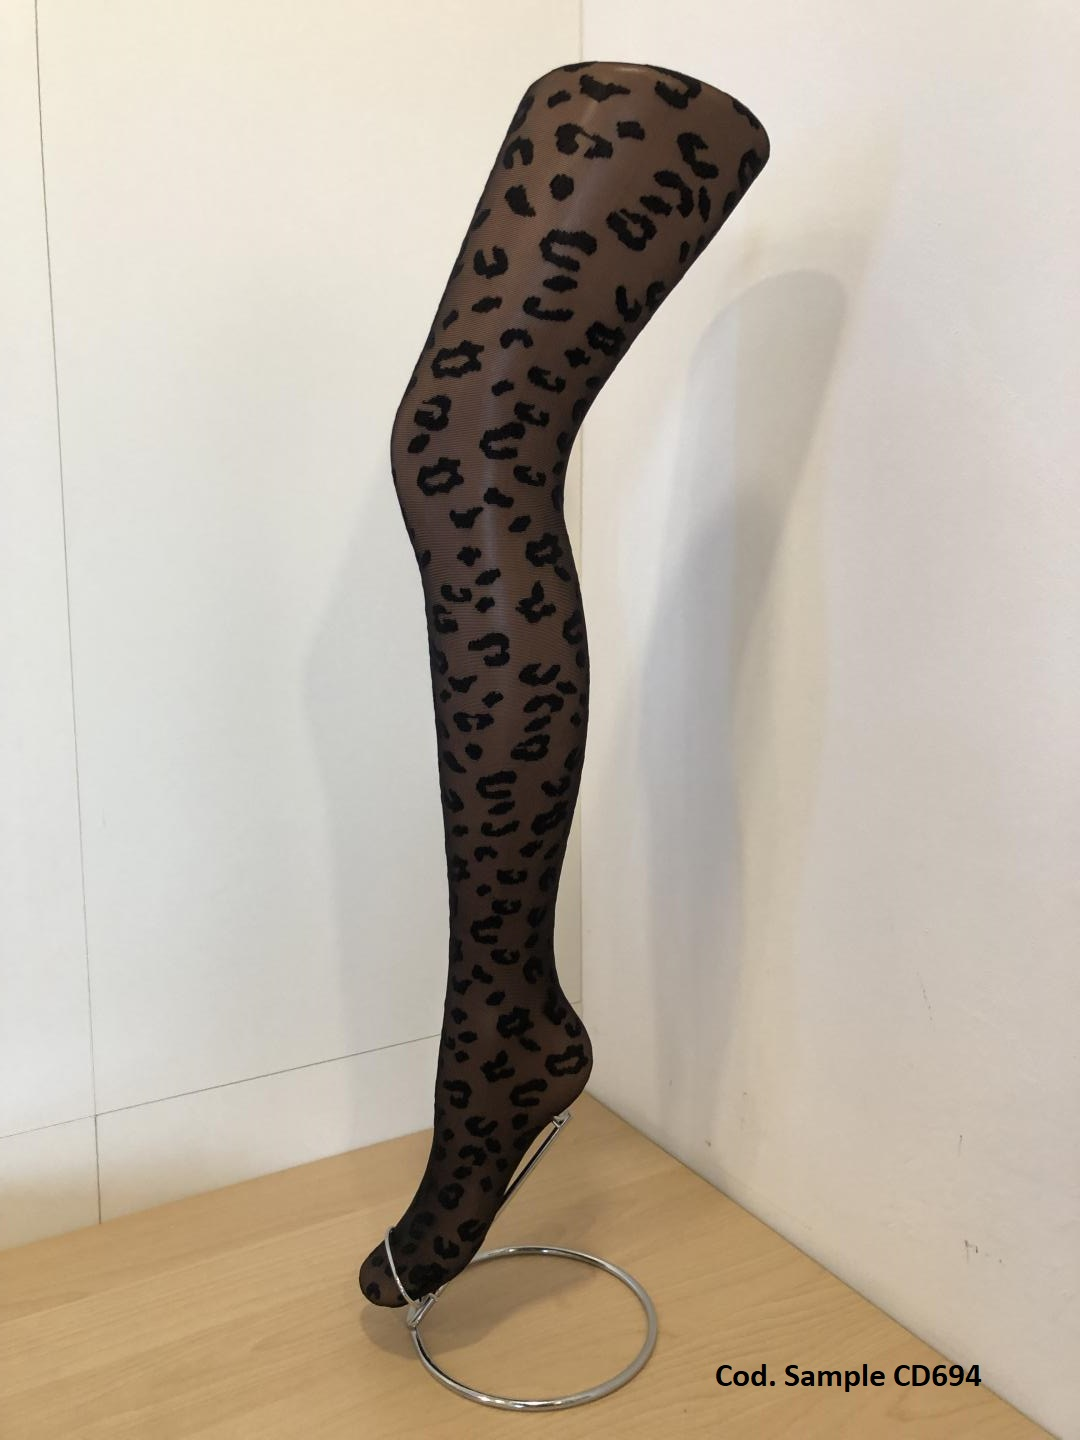 PANTYHOSE WITH LEO PATTERN! 🐆